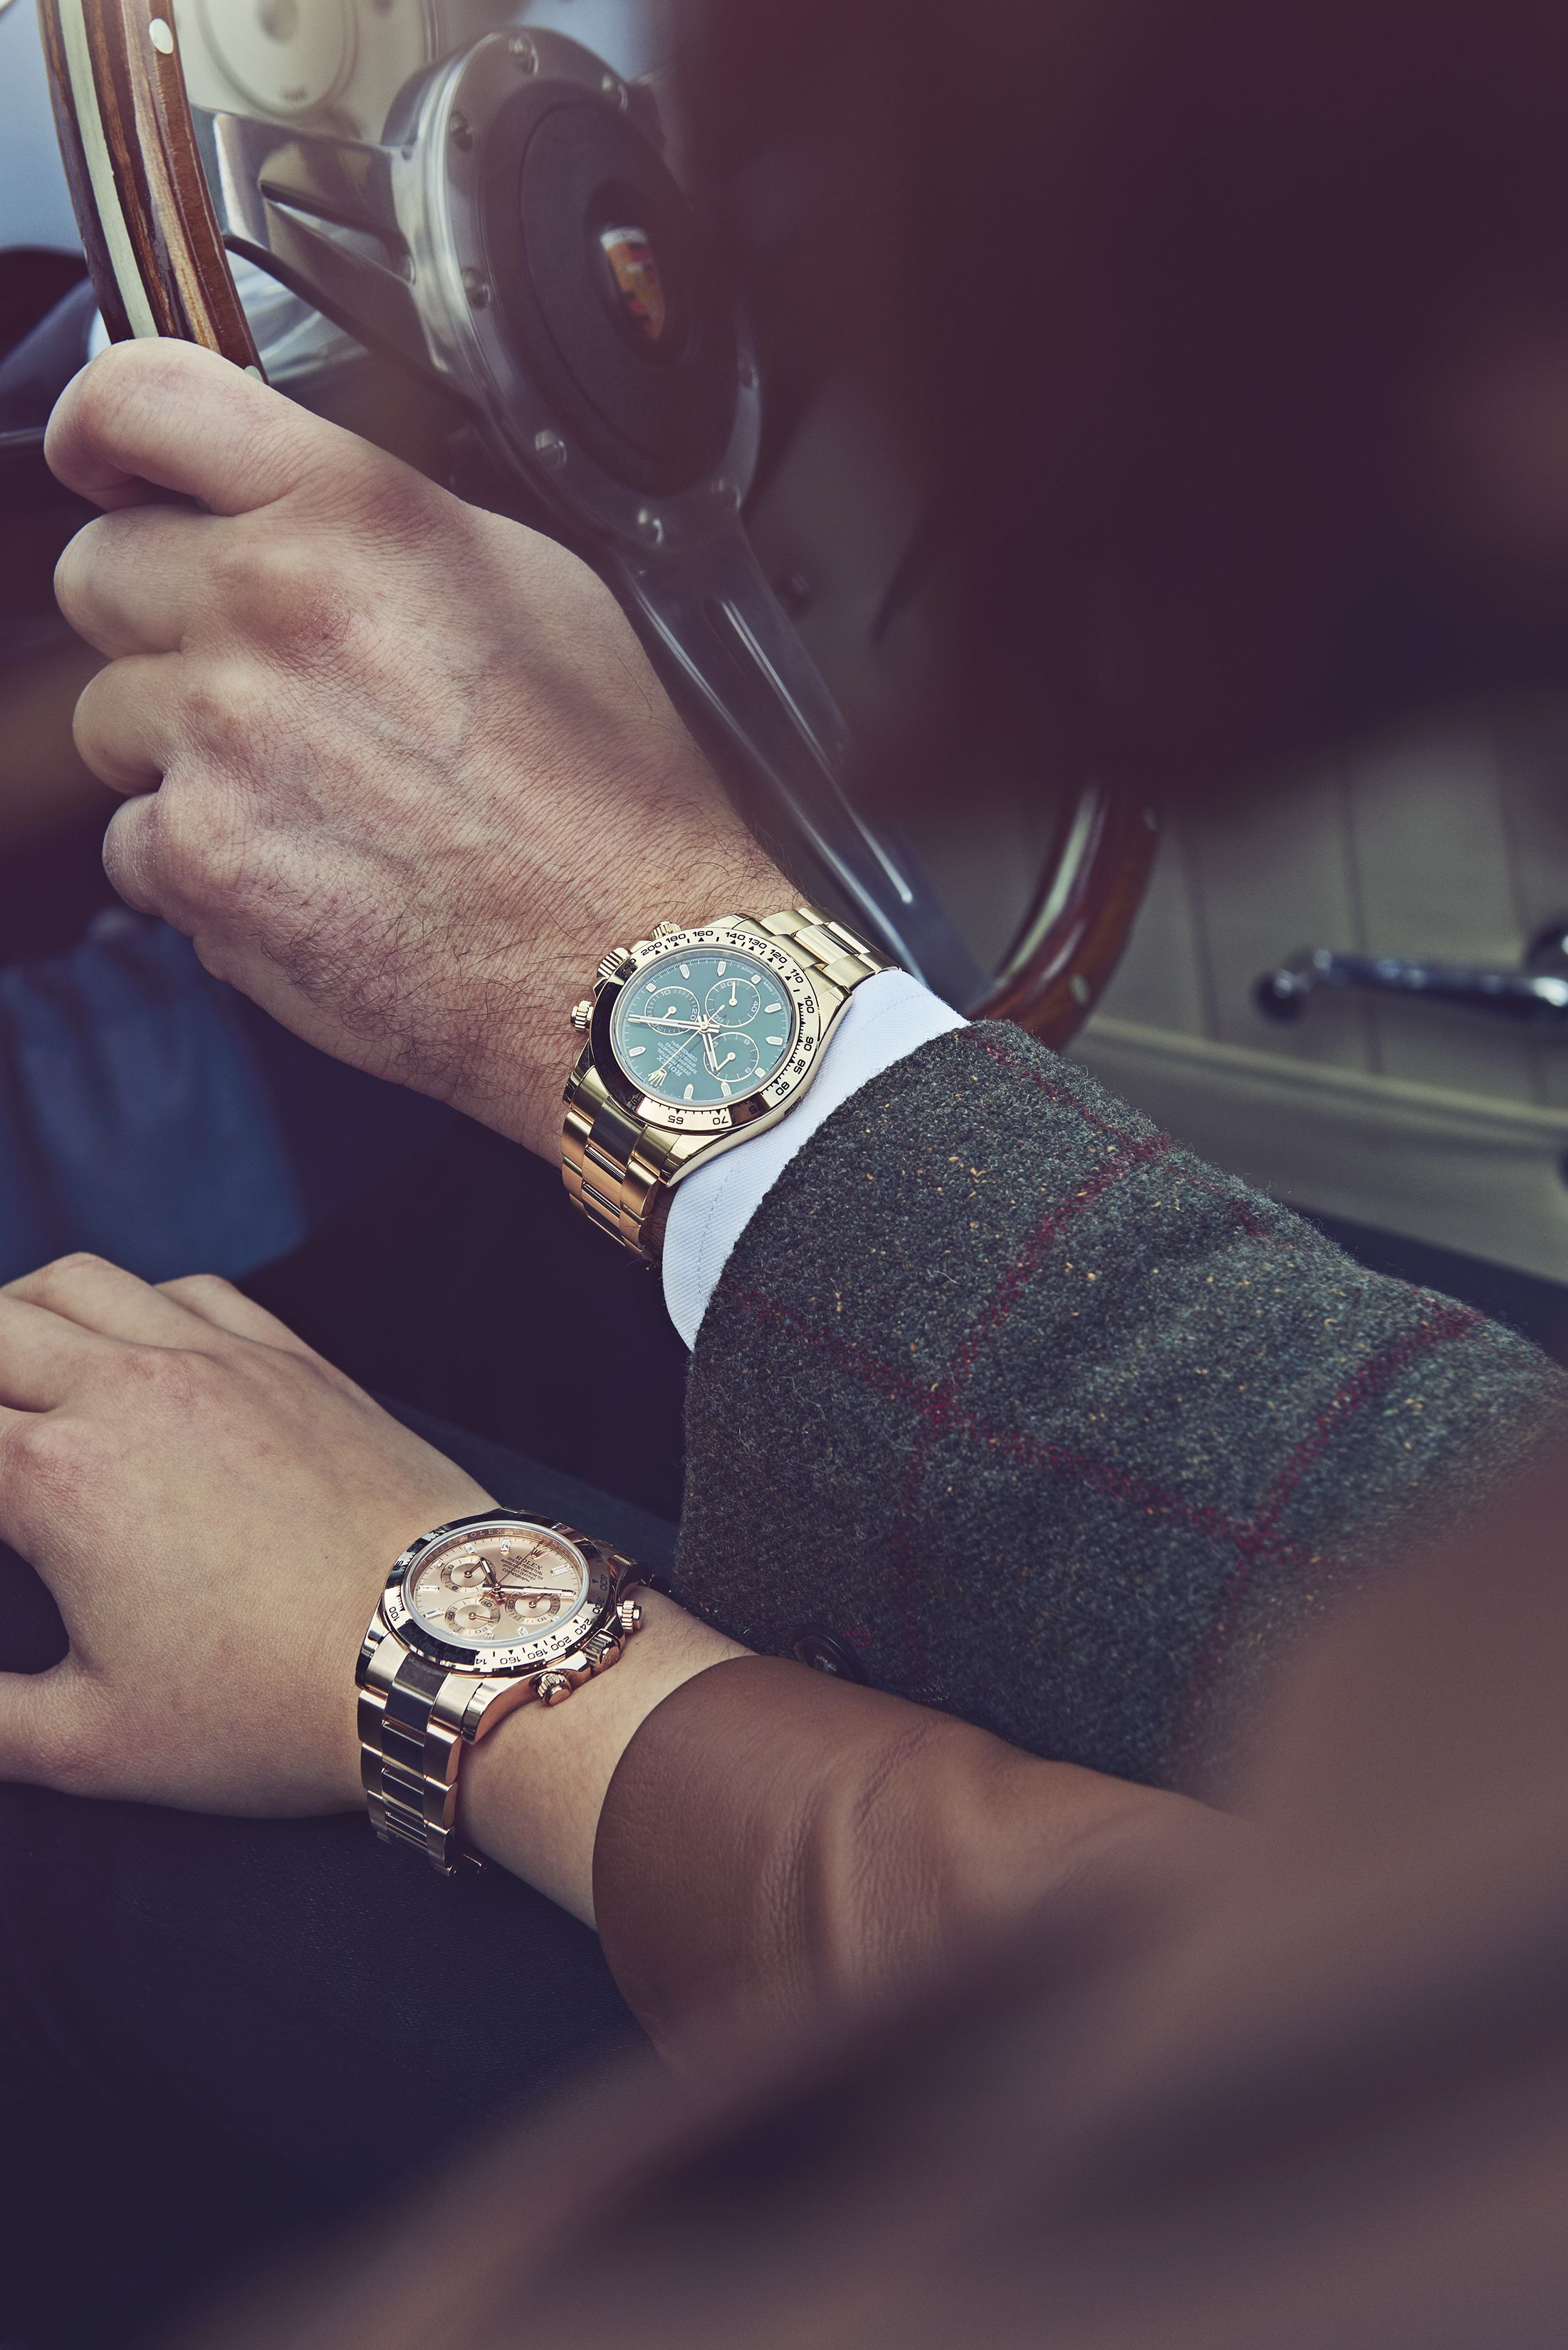 A #DailyDuo from our recent photoshoot featuring two beautiful Rolex Daytonas #Relationshipgoals #rolexwatches